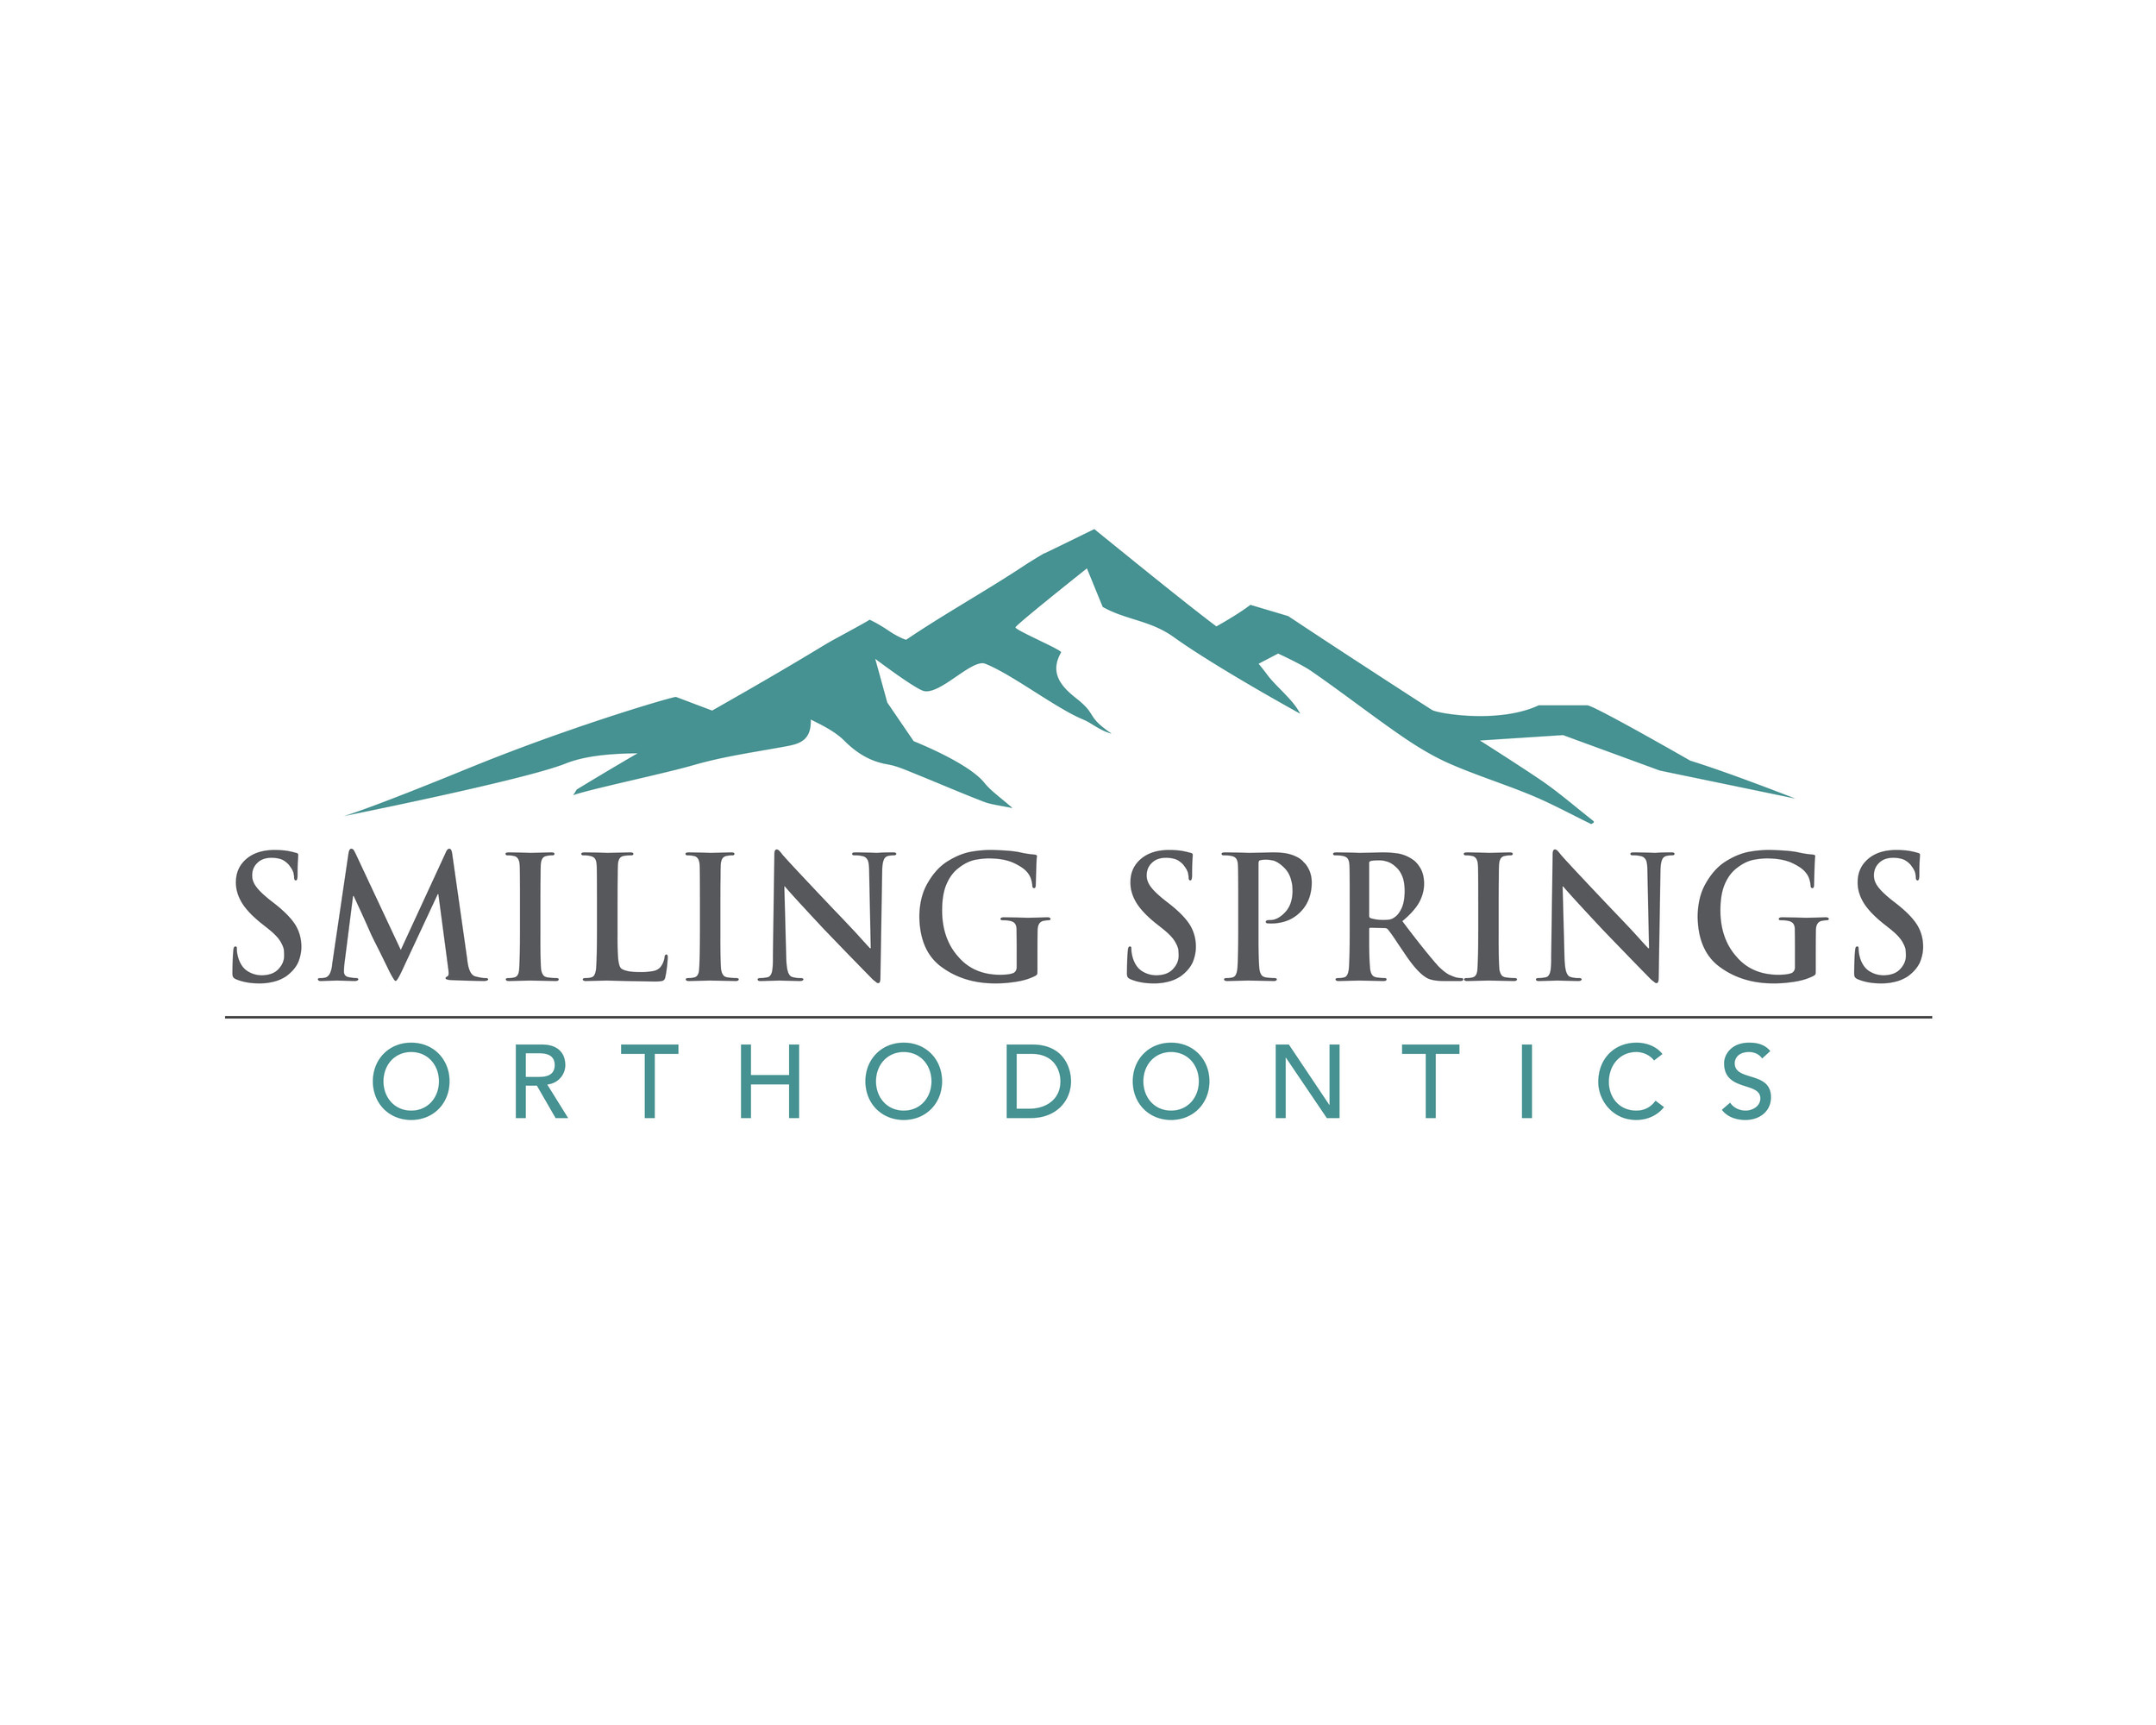 Colorado Springs Orthodontics Colorado Springs Orthodontist Smiling Springs Orthodontics Colorado Springs Braces